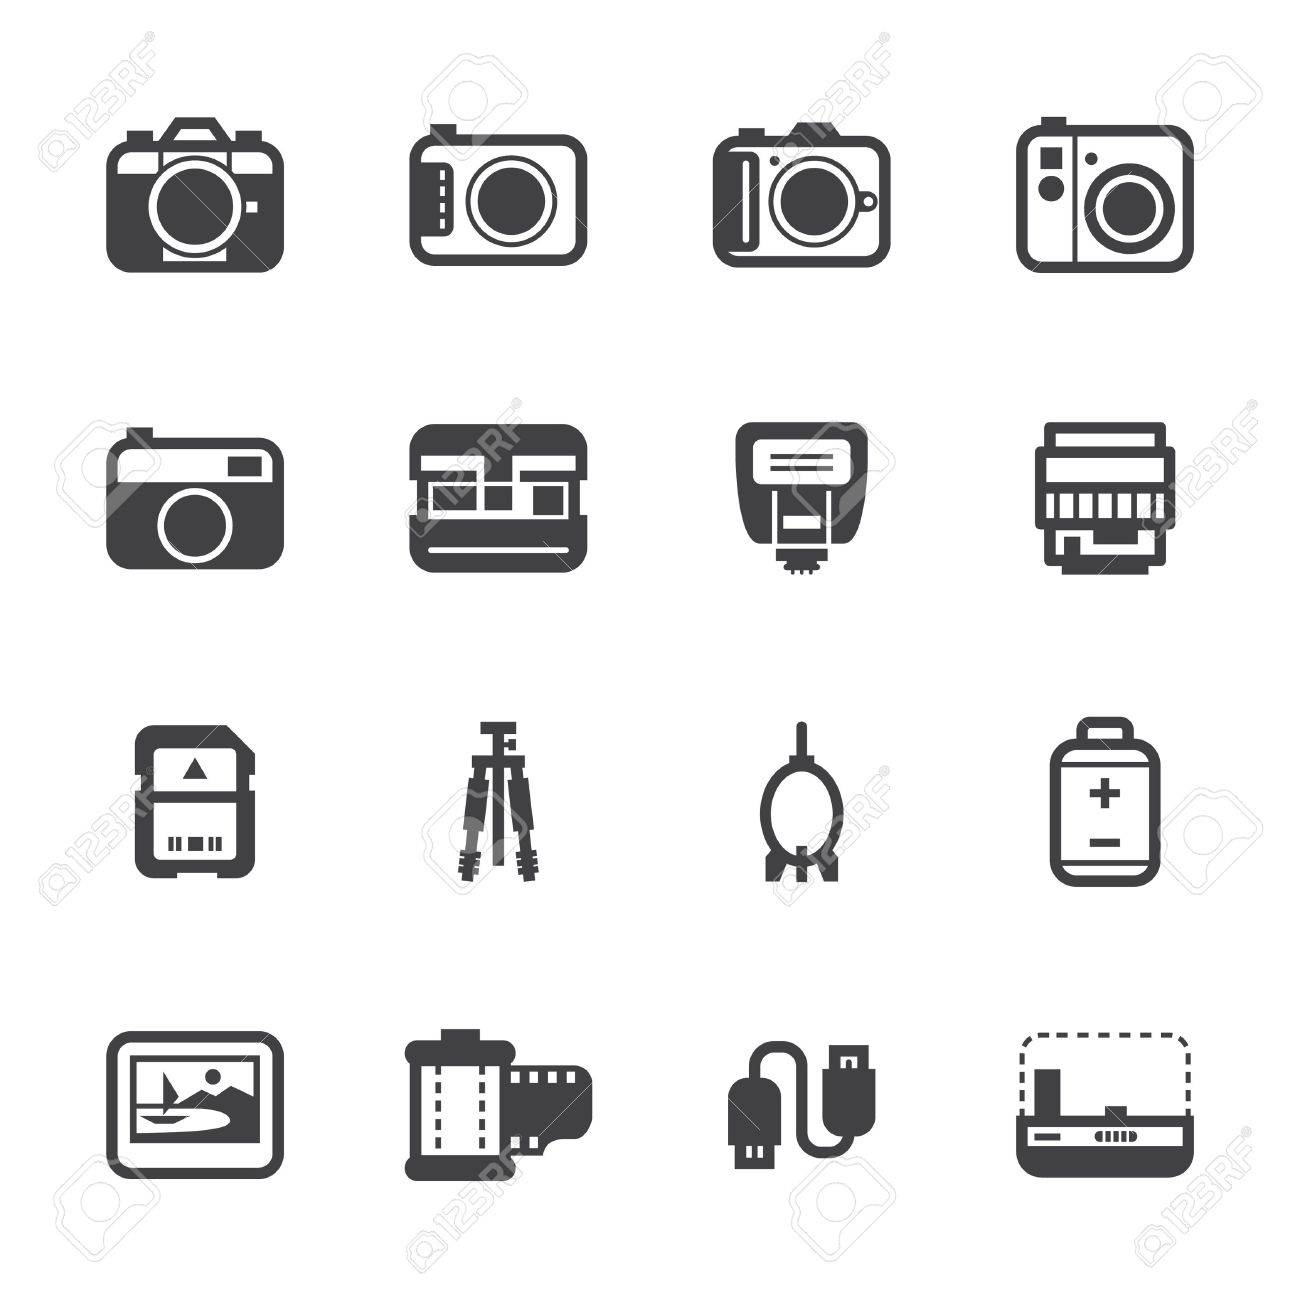 Camera Icons and Camera Accessories Icons with White Background Stock Vector - 20232742